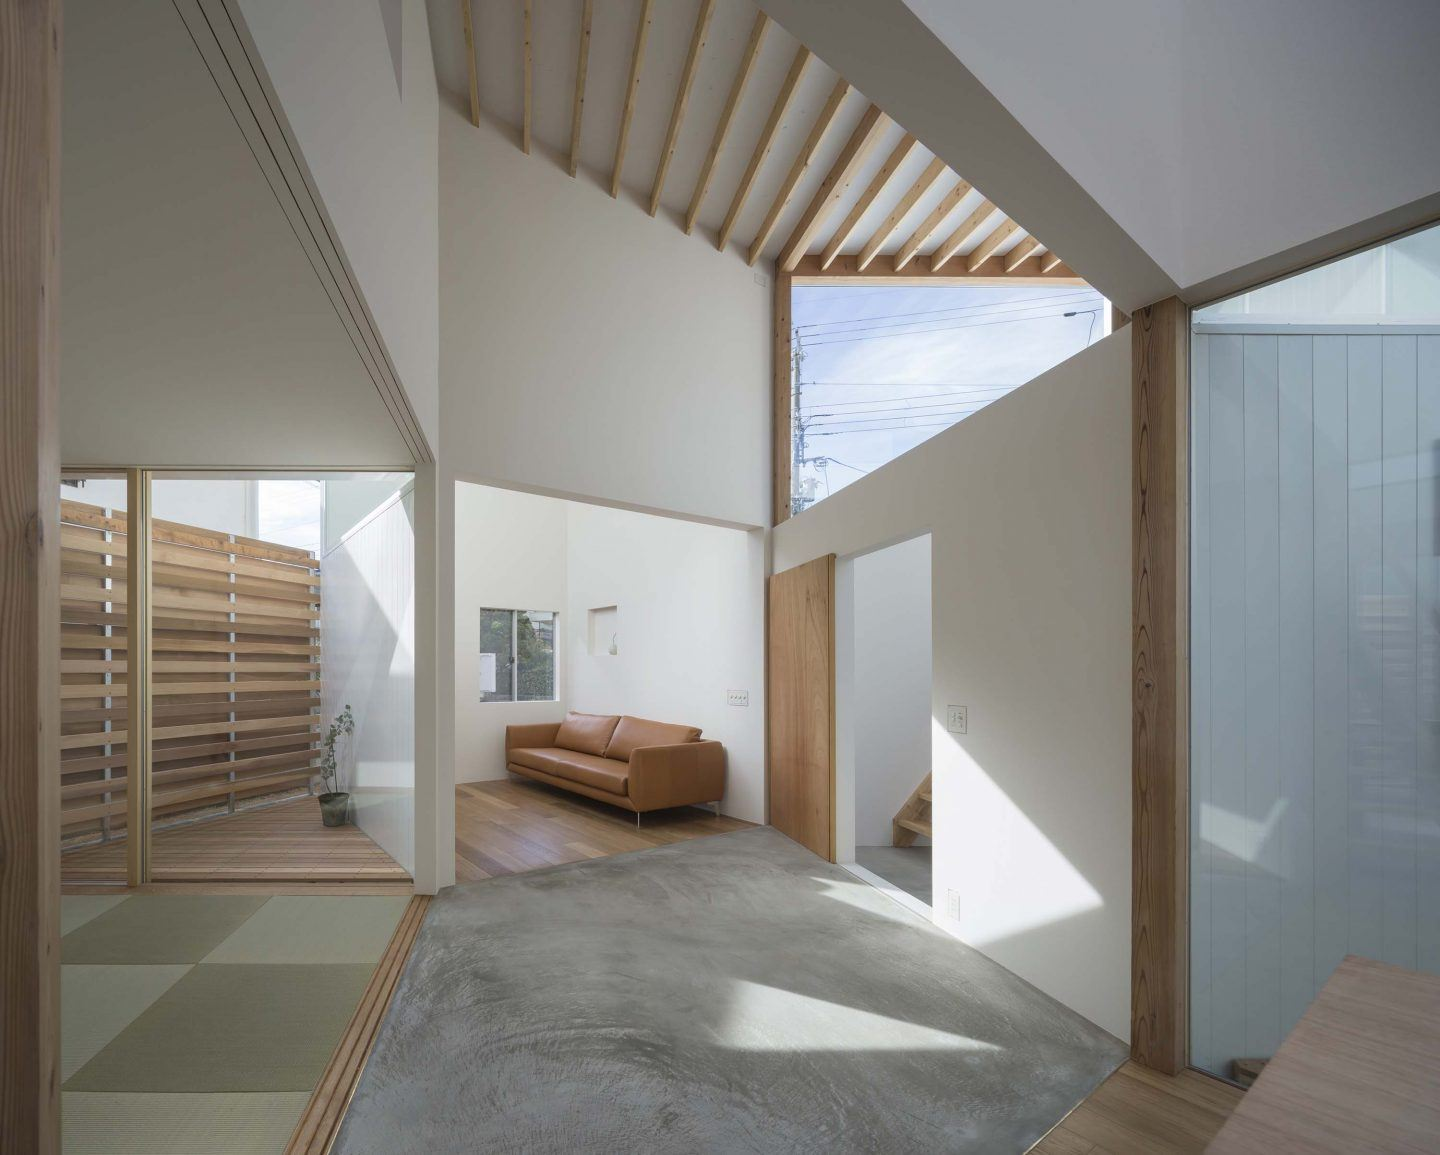 IGNANT-Architecture-Tato-Architects-House-In-Hokusetsu-6